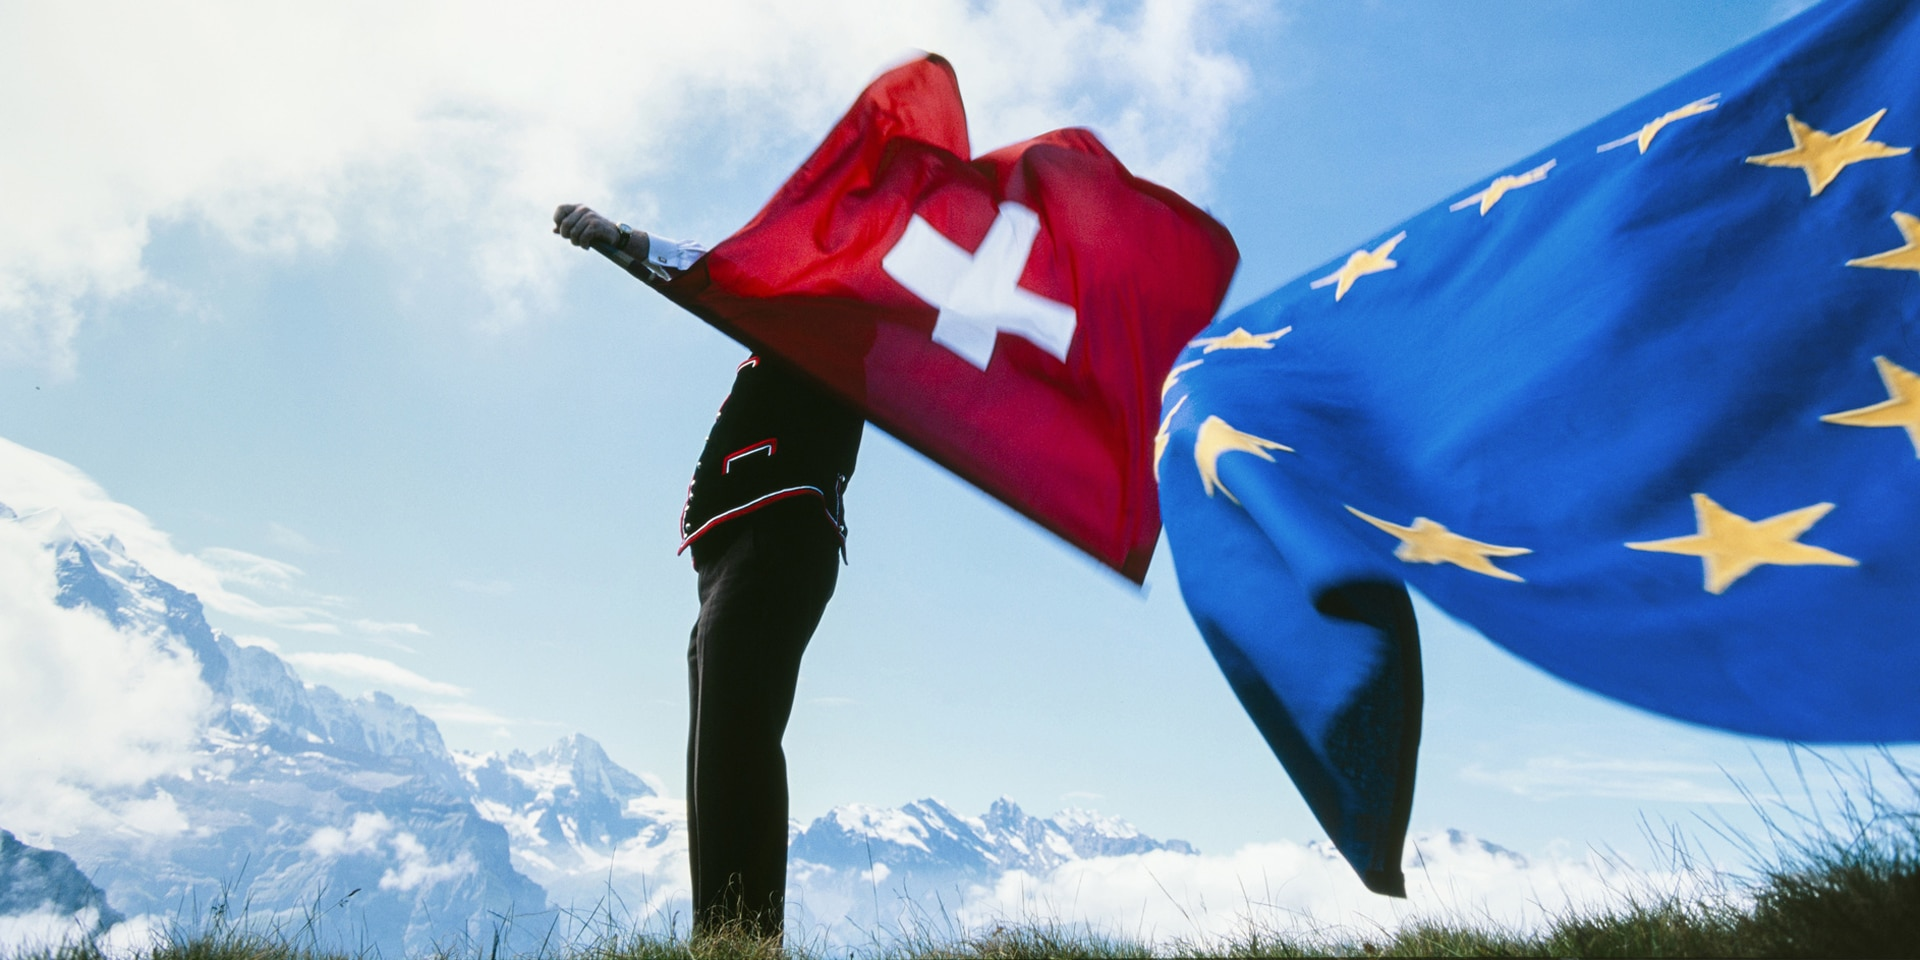 A flag-thrower waving the Swiss flag in one hand and the EU flag in the other against the backdrop of the Bernese Alps.